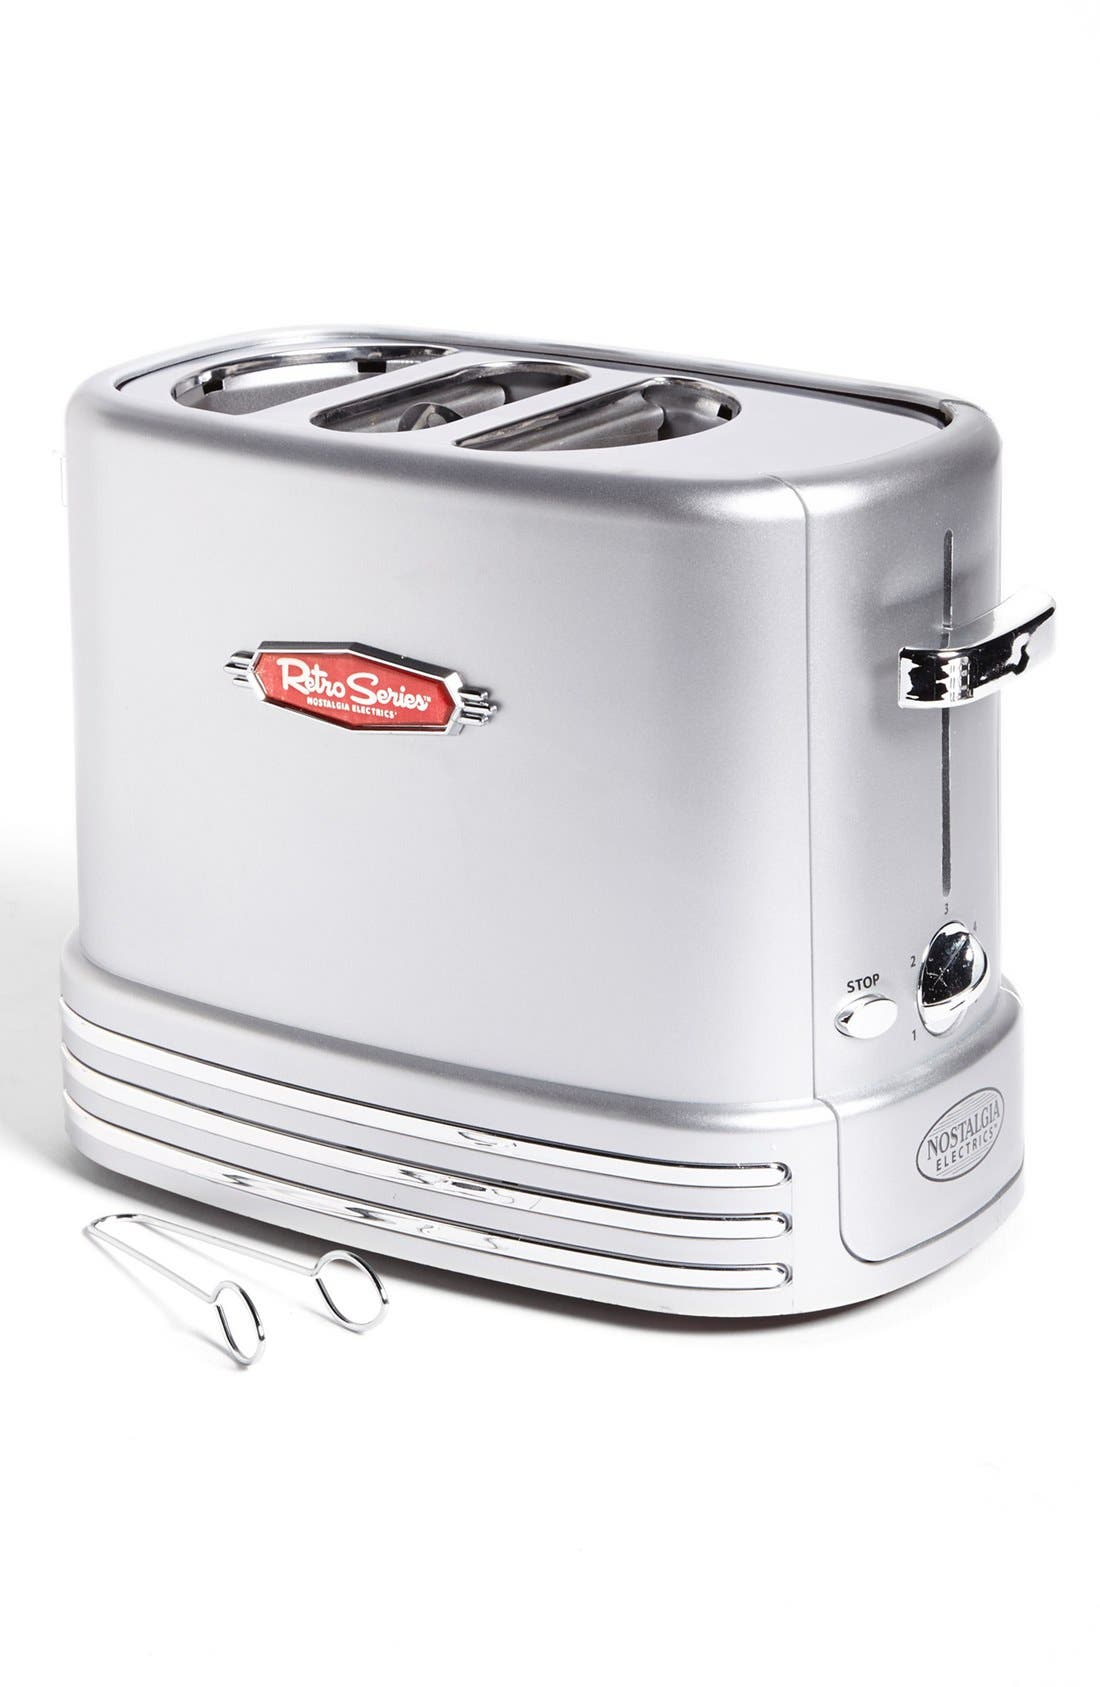 Alternate Image 1 Selected - 'Retro Series' Pop-Up Hot Dog Toaster